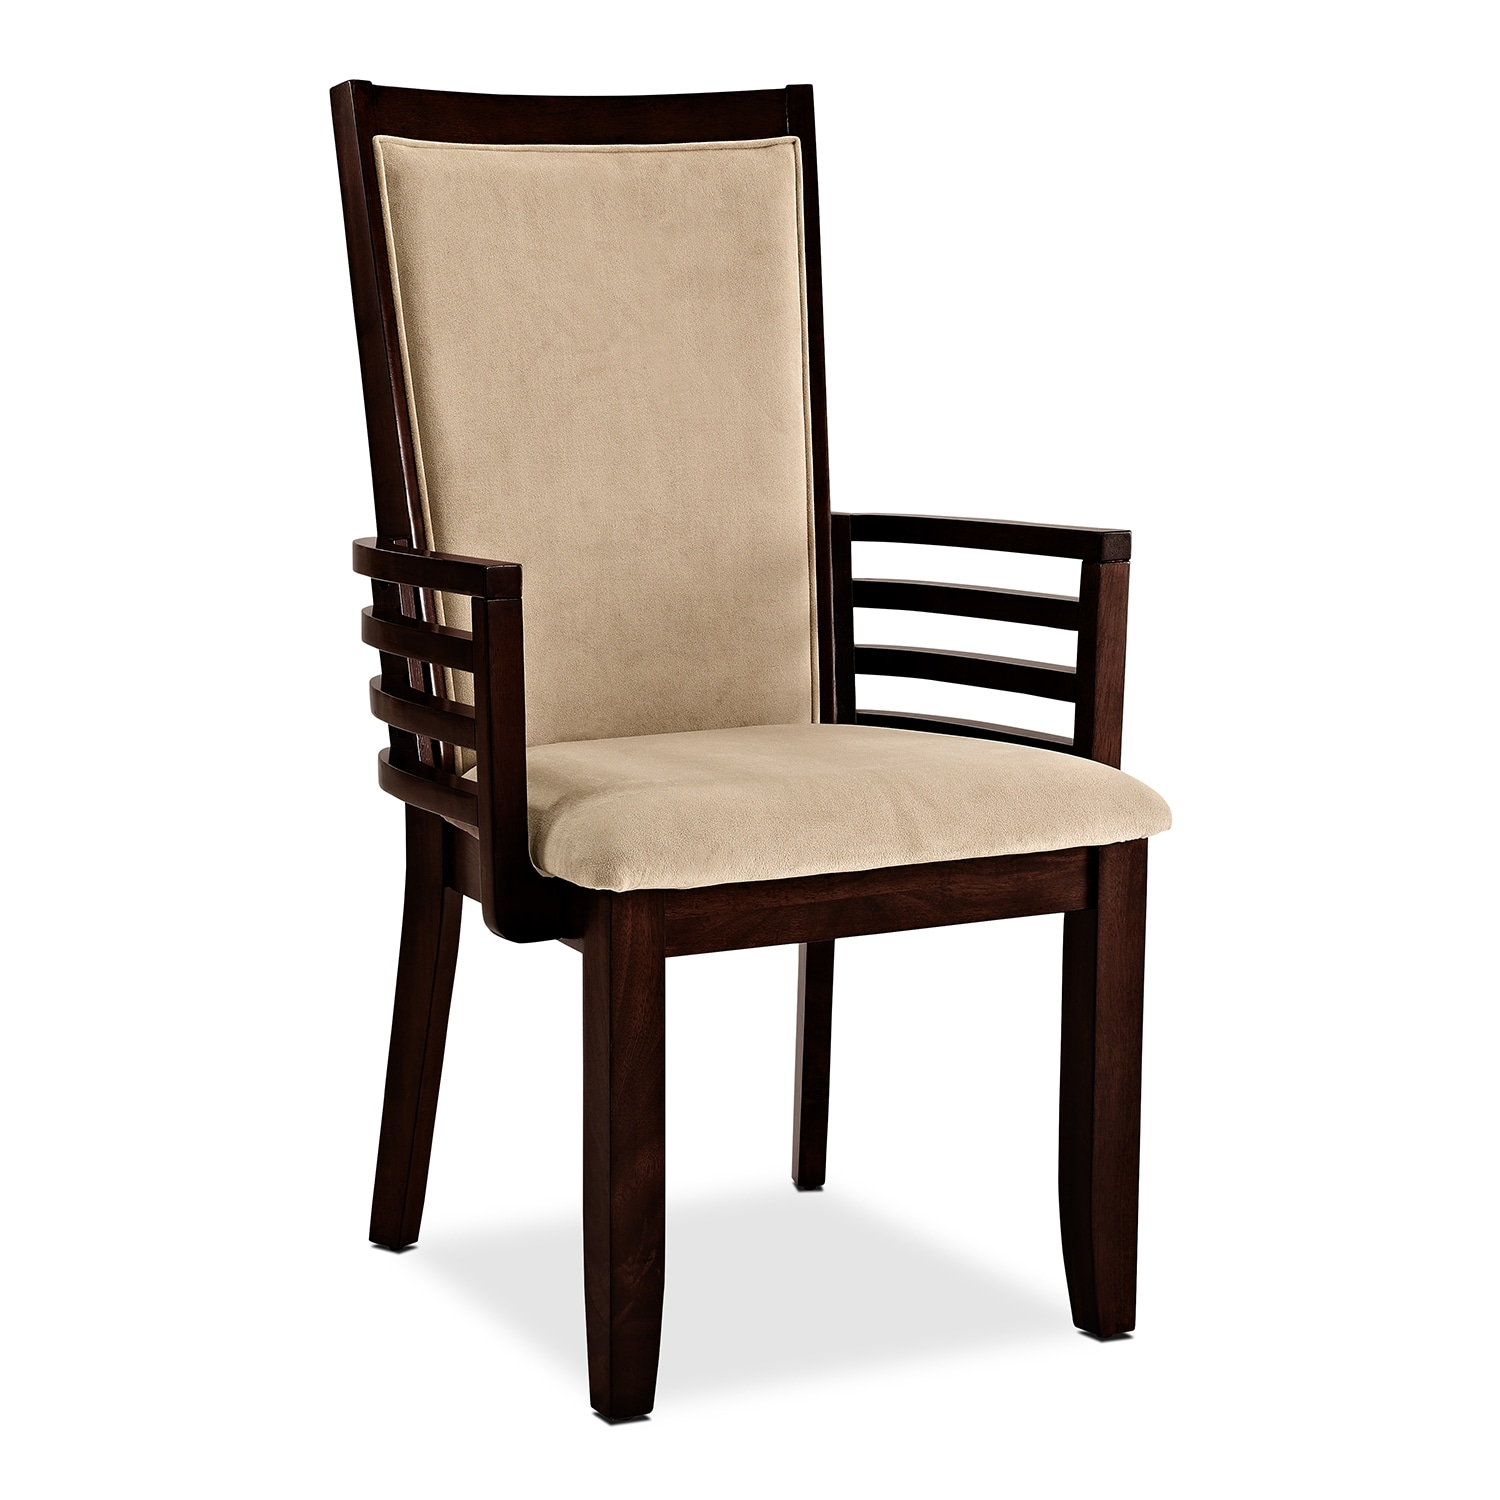 Dining Room Arm Chairs Of Furnishings For Every Room Online And Store Furniture